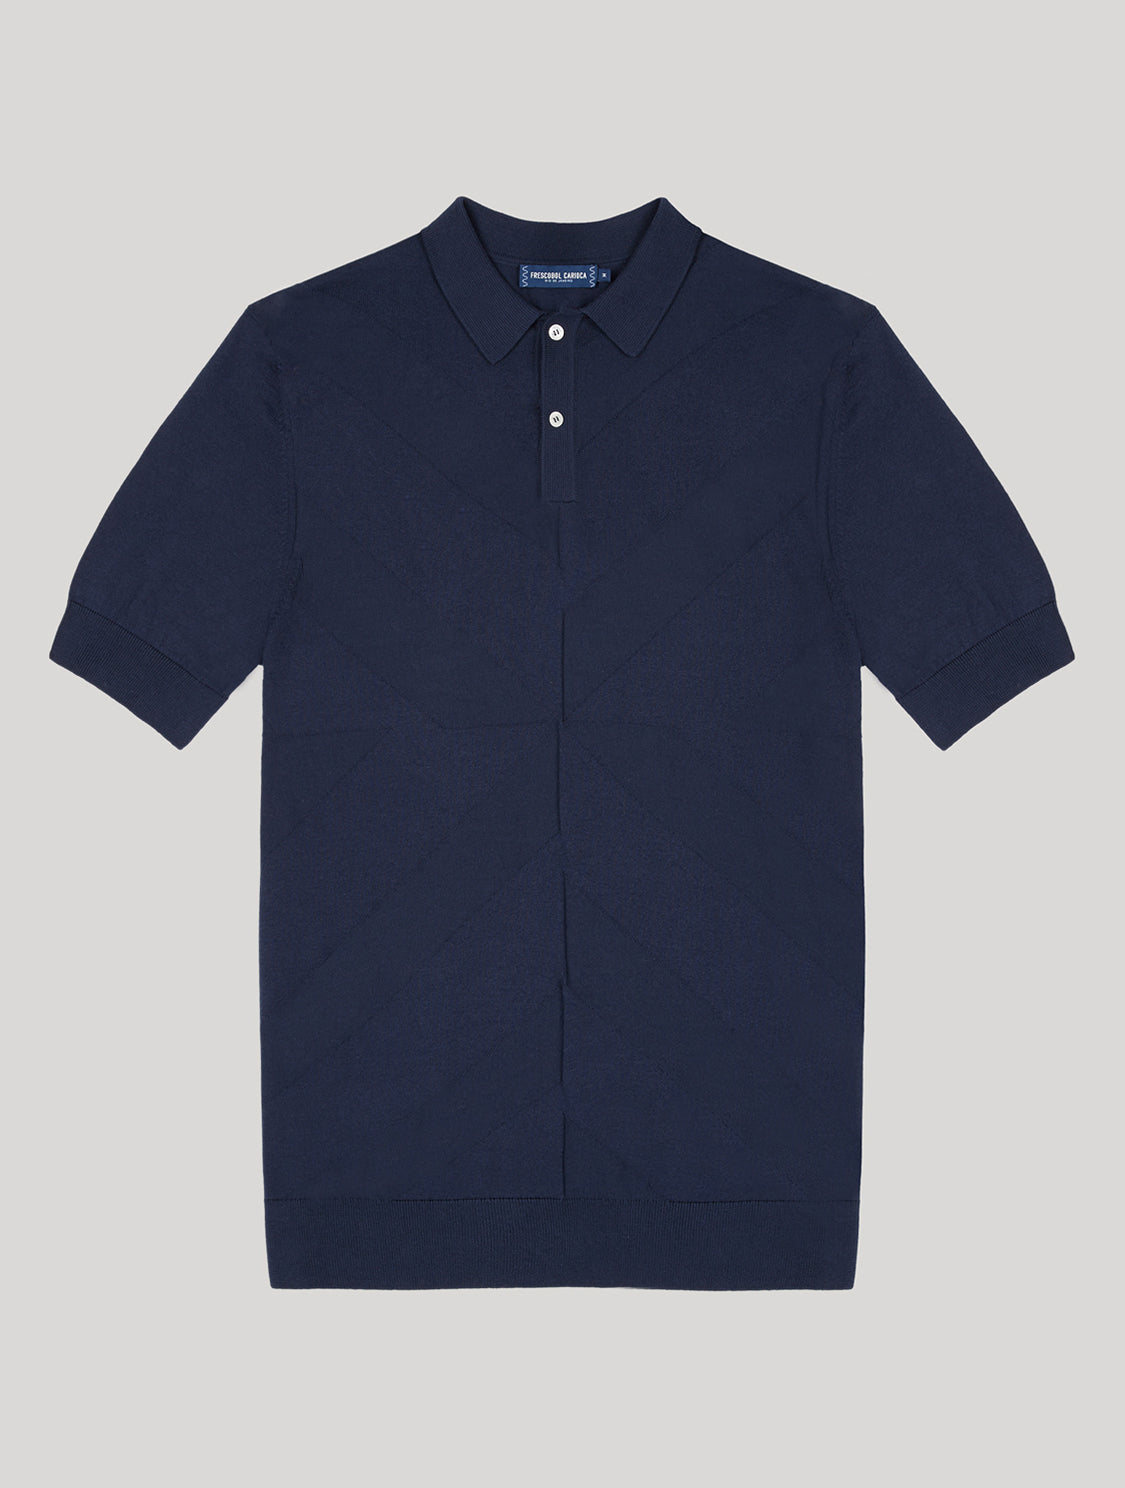 Francisco Knit Jacquard Navy-Blue S